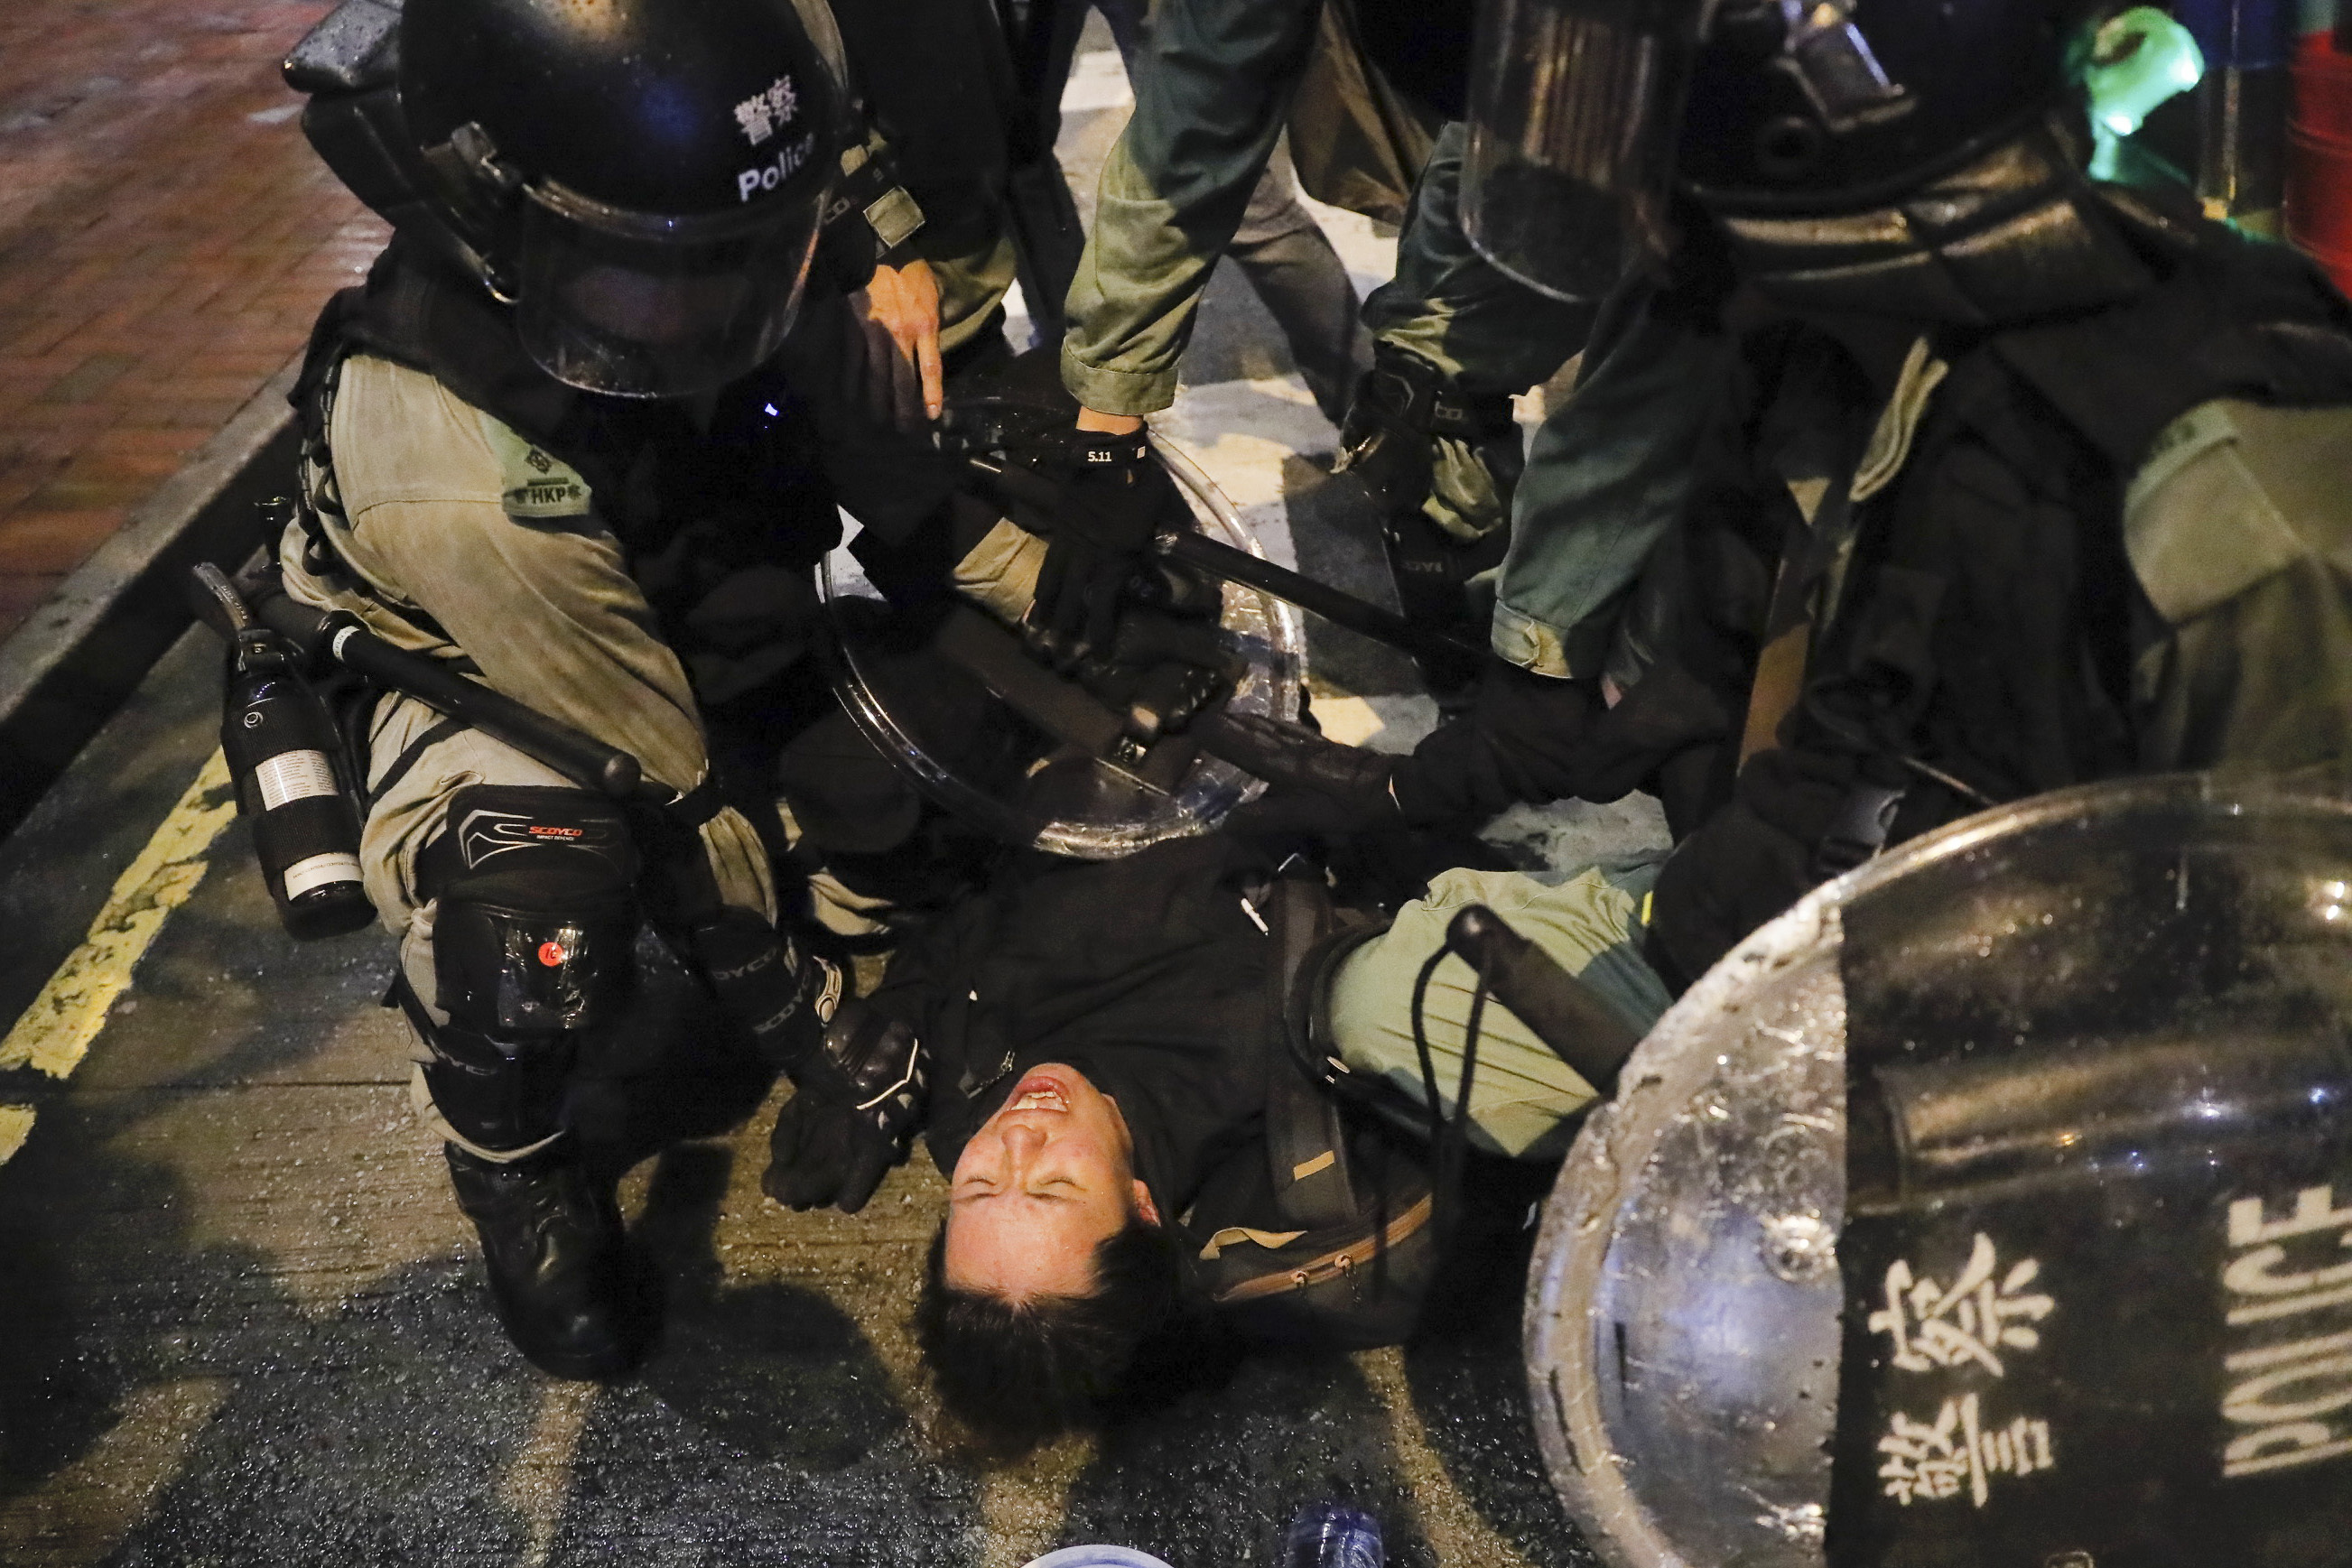 Riot police arrest a protester during a pro-democracy protest in causeway bay, Hong Kong, Saturday, Aug. 31, 2019.